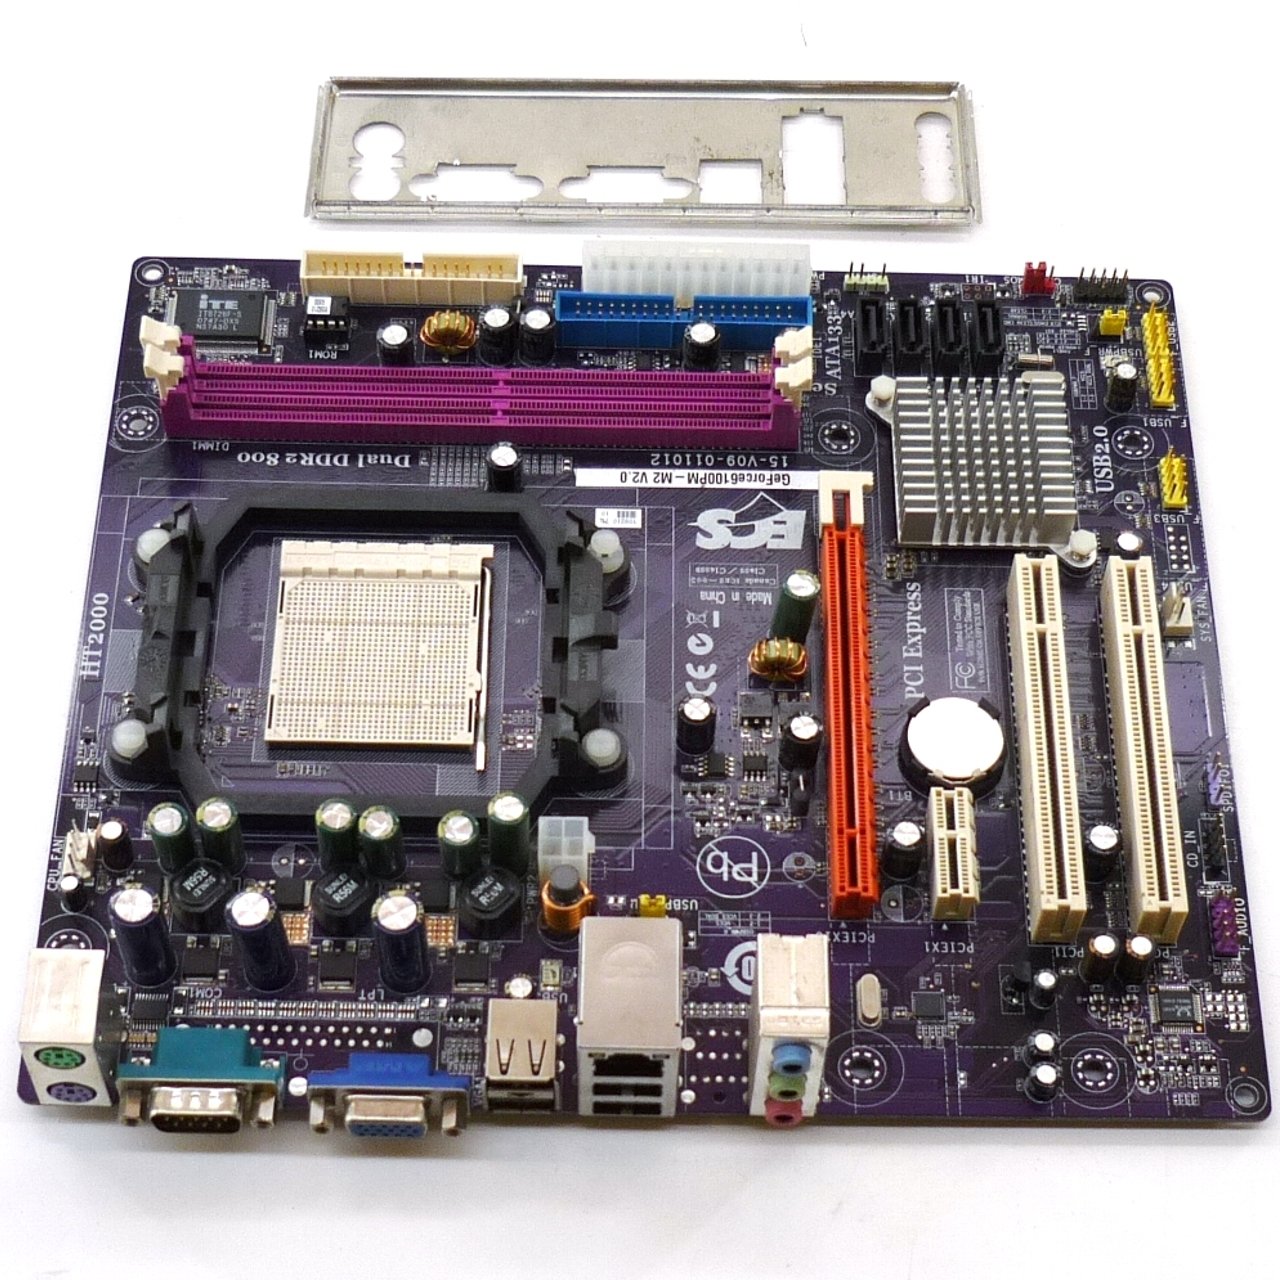 P4m900t m motherboard